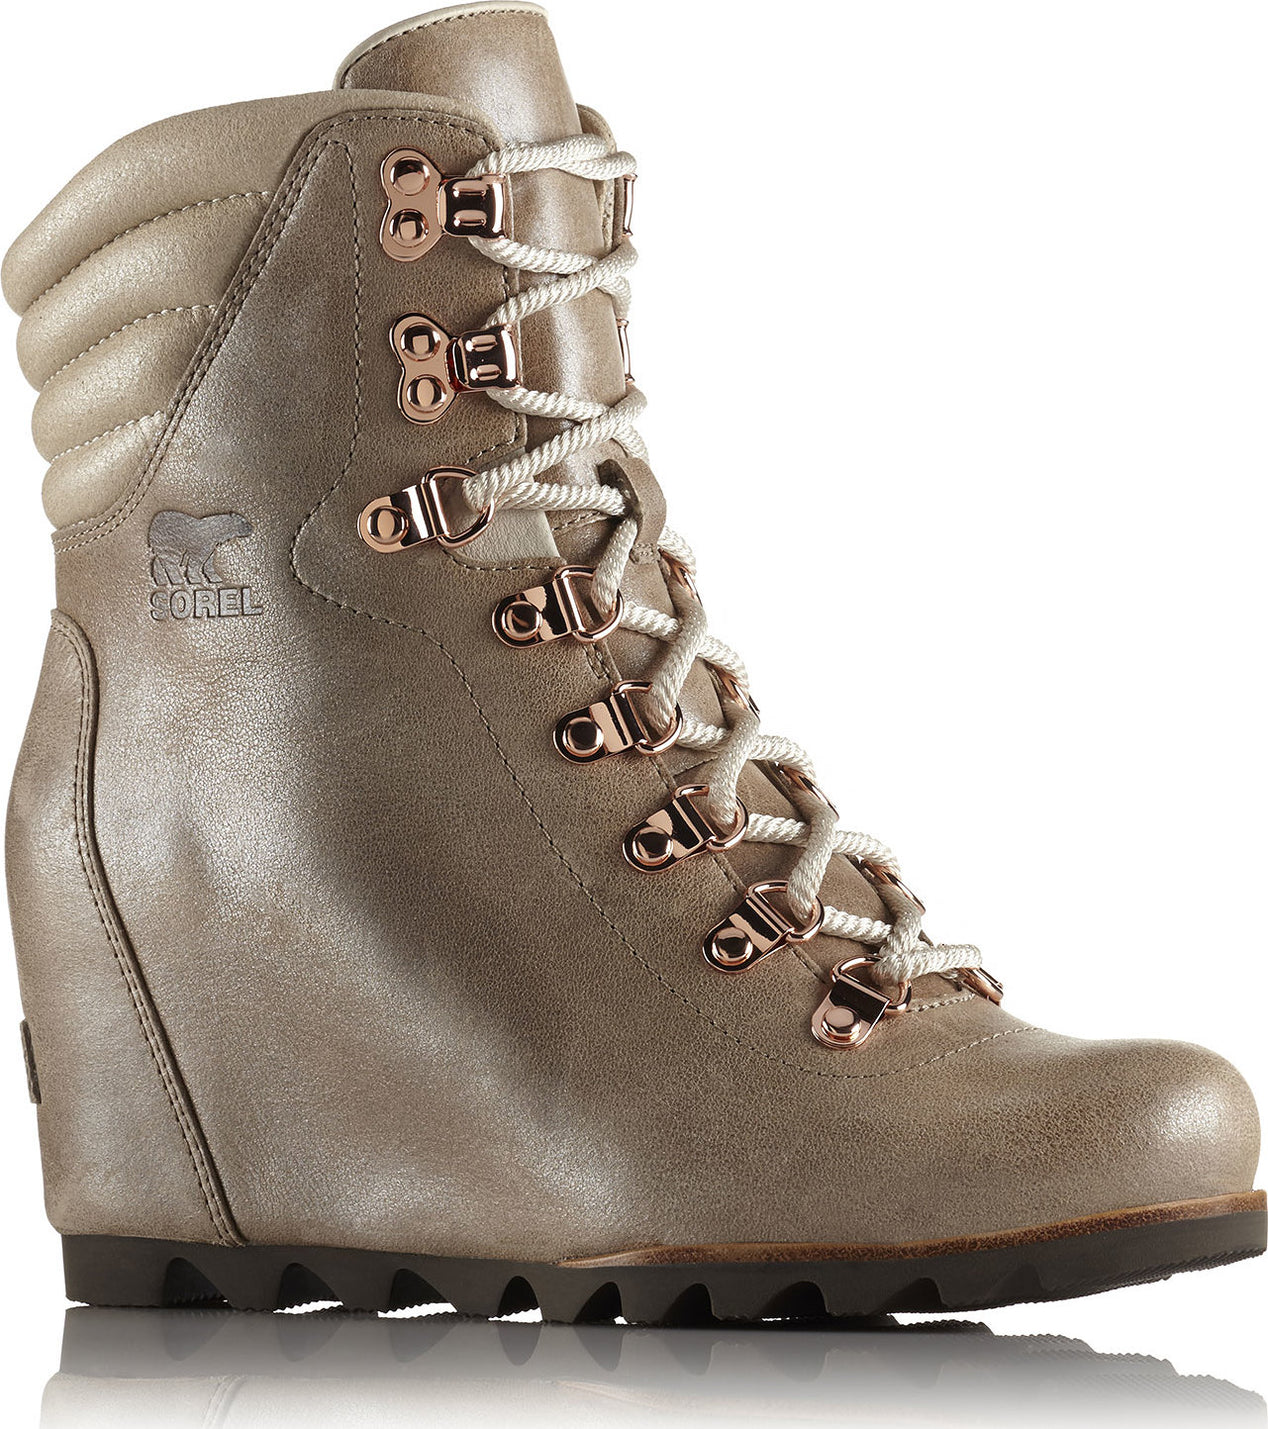 8589c21aff143 Sorel Conquest Wedge Holiday Boots - Women's